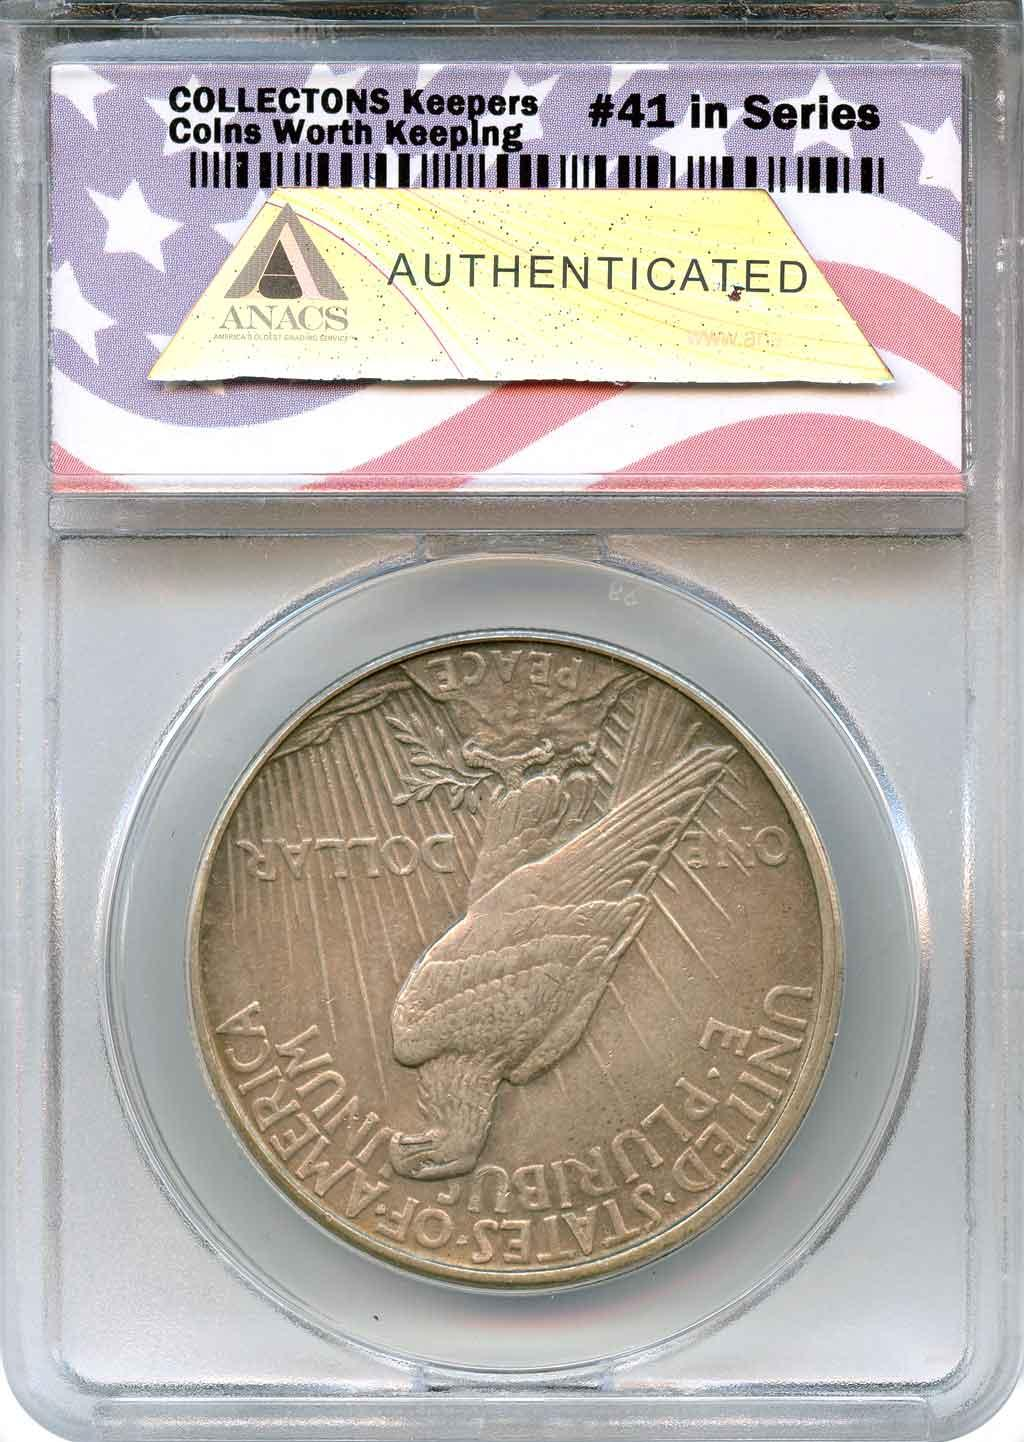 CollecTons Keepers #41: 1921 High Relief Peace Silver Dollar Certified in Exclusive ANACS Holder